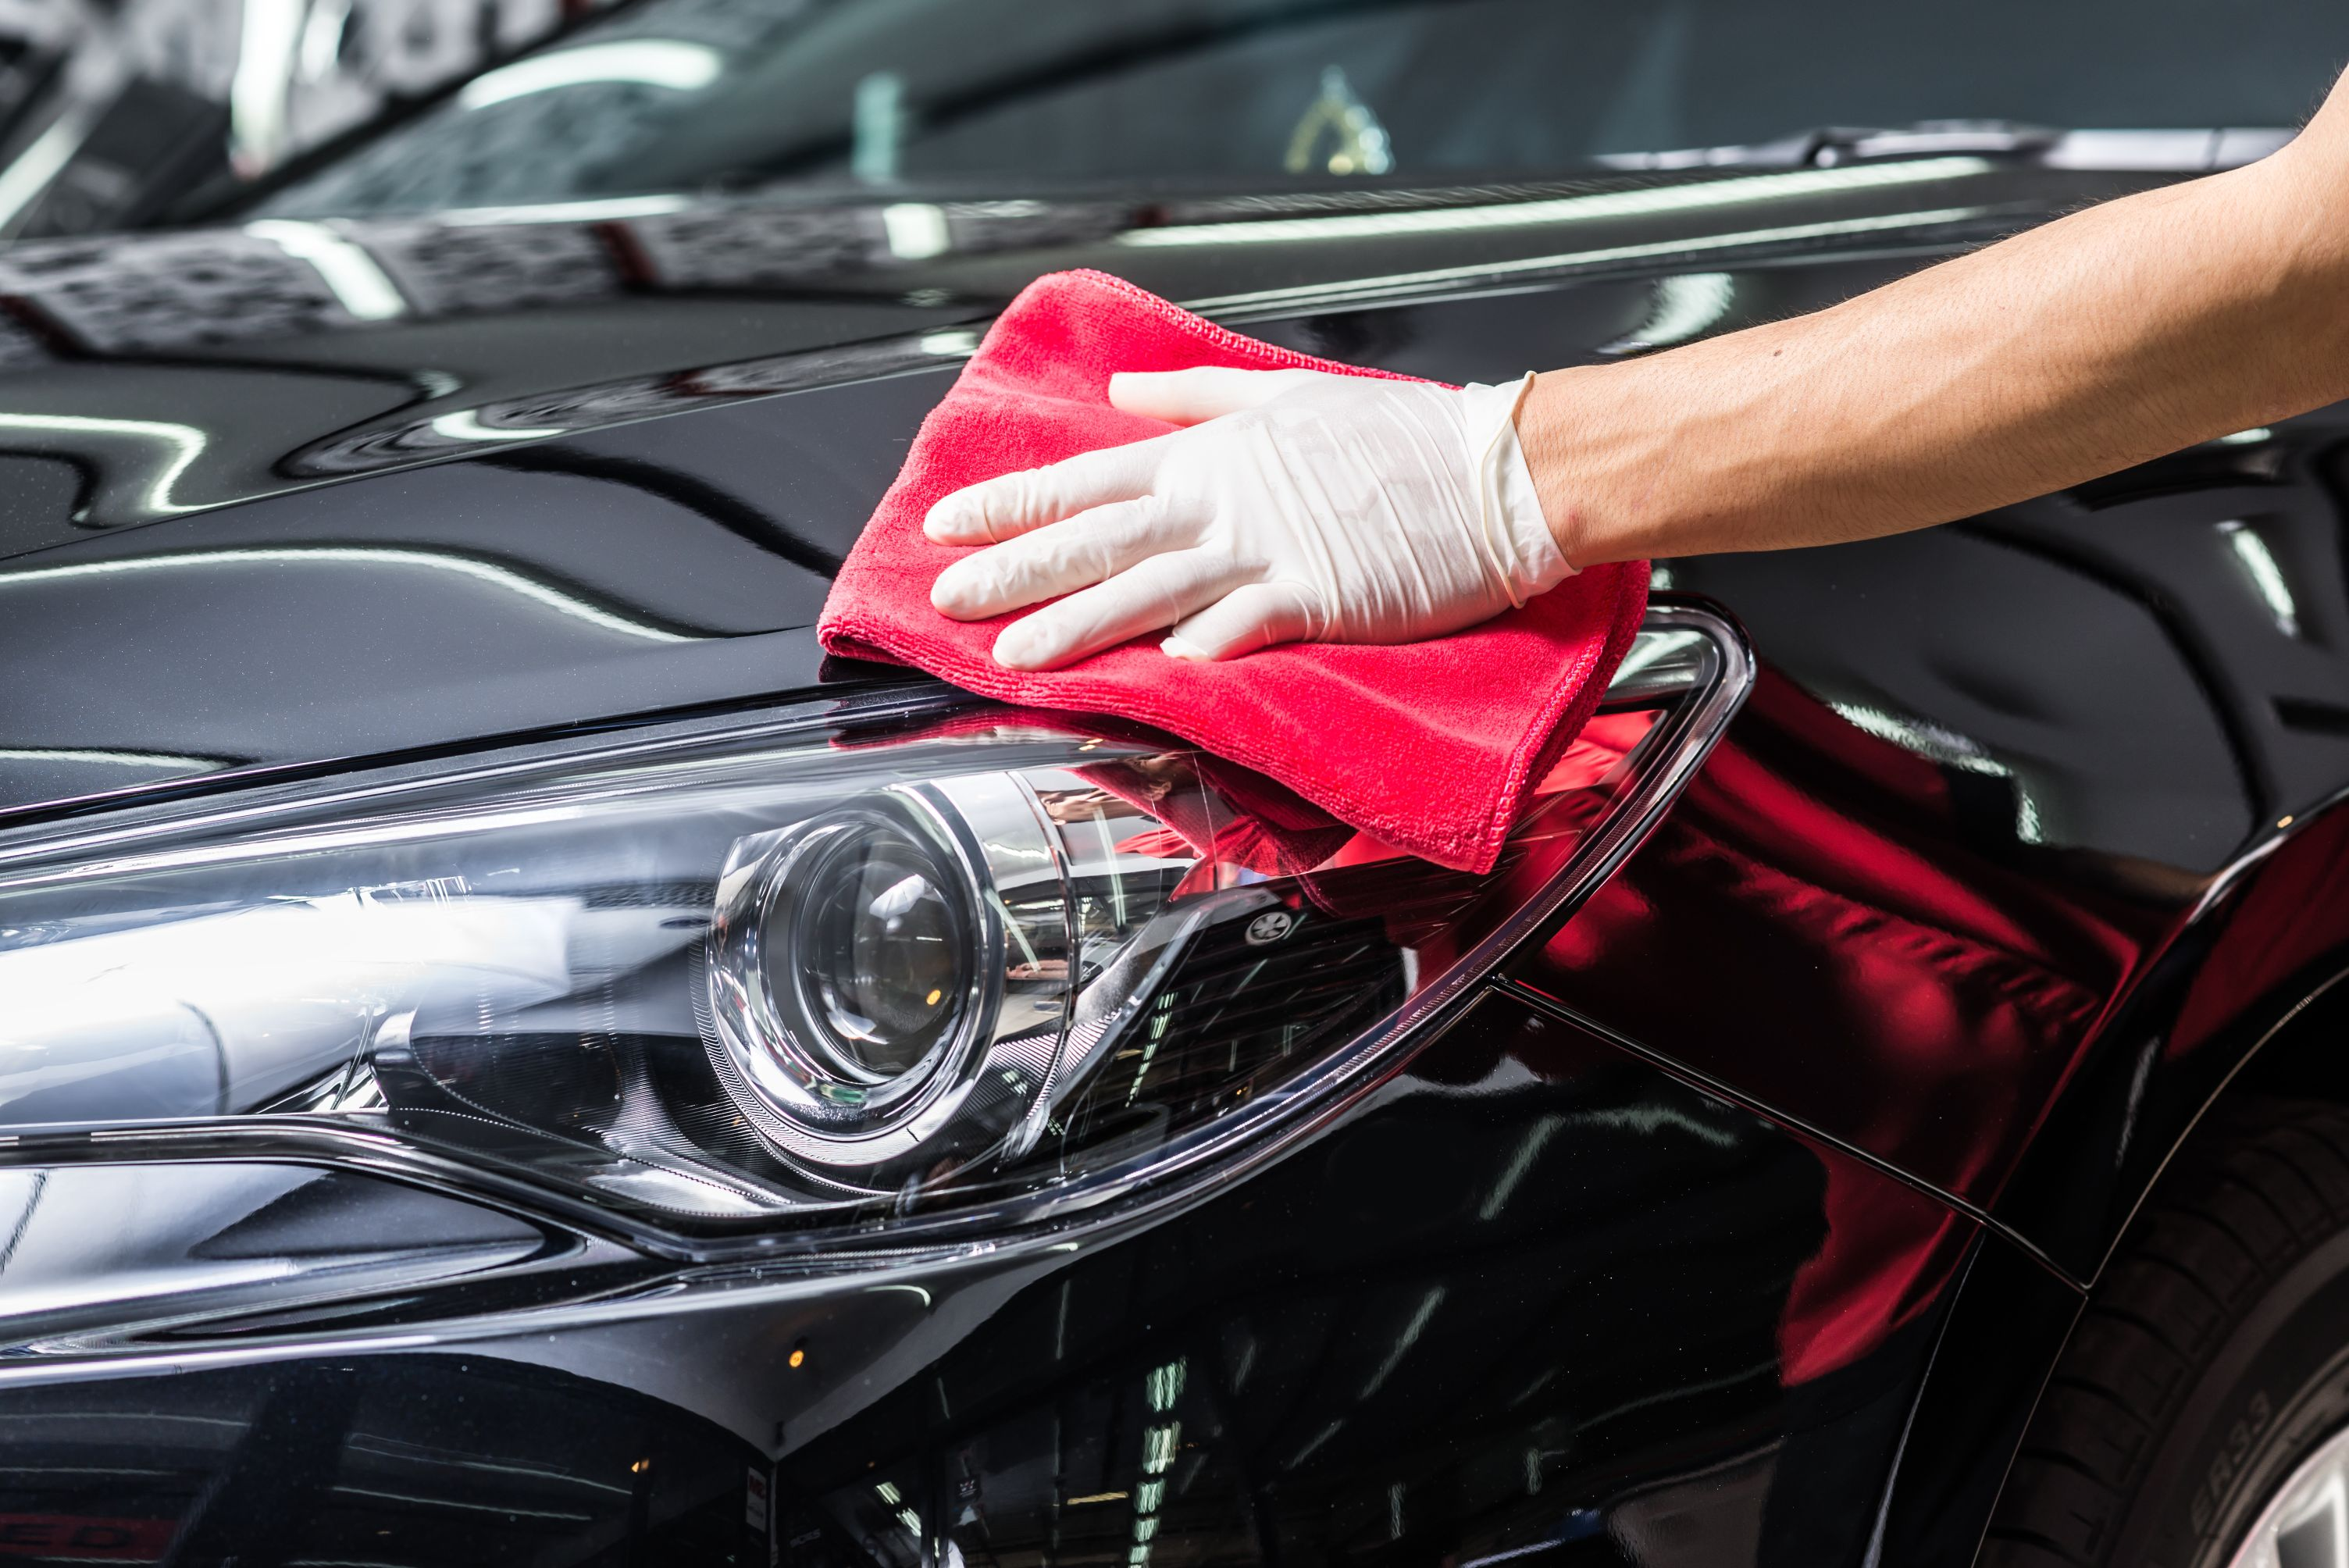 15 Cleaning secrets only car detailers know | SmartGuy